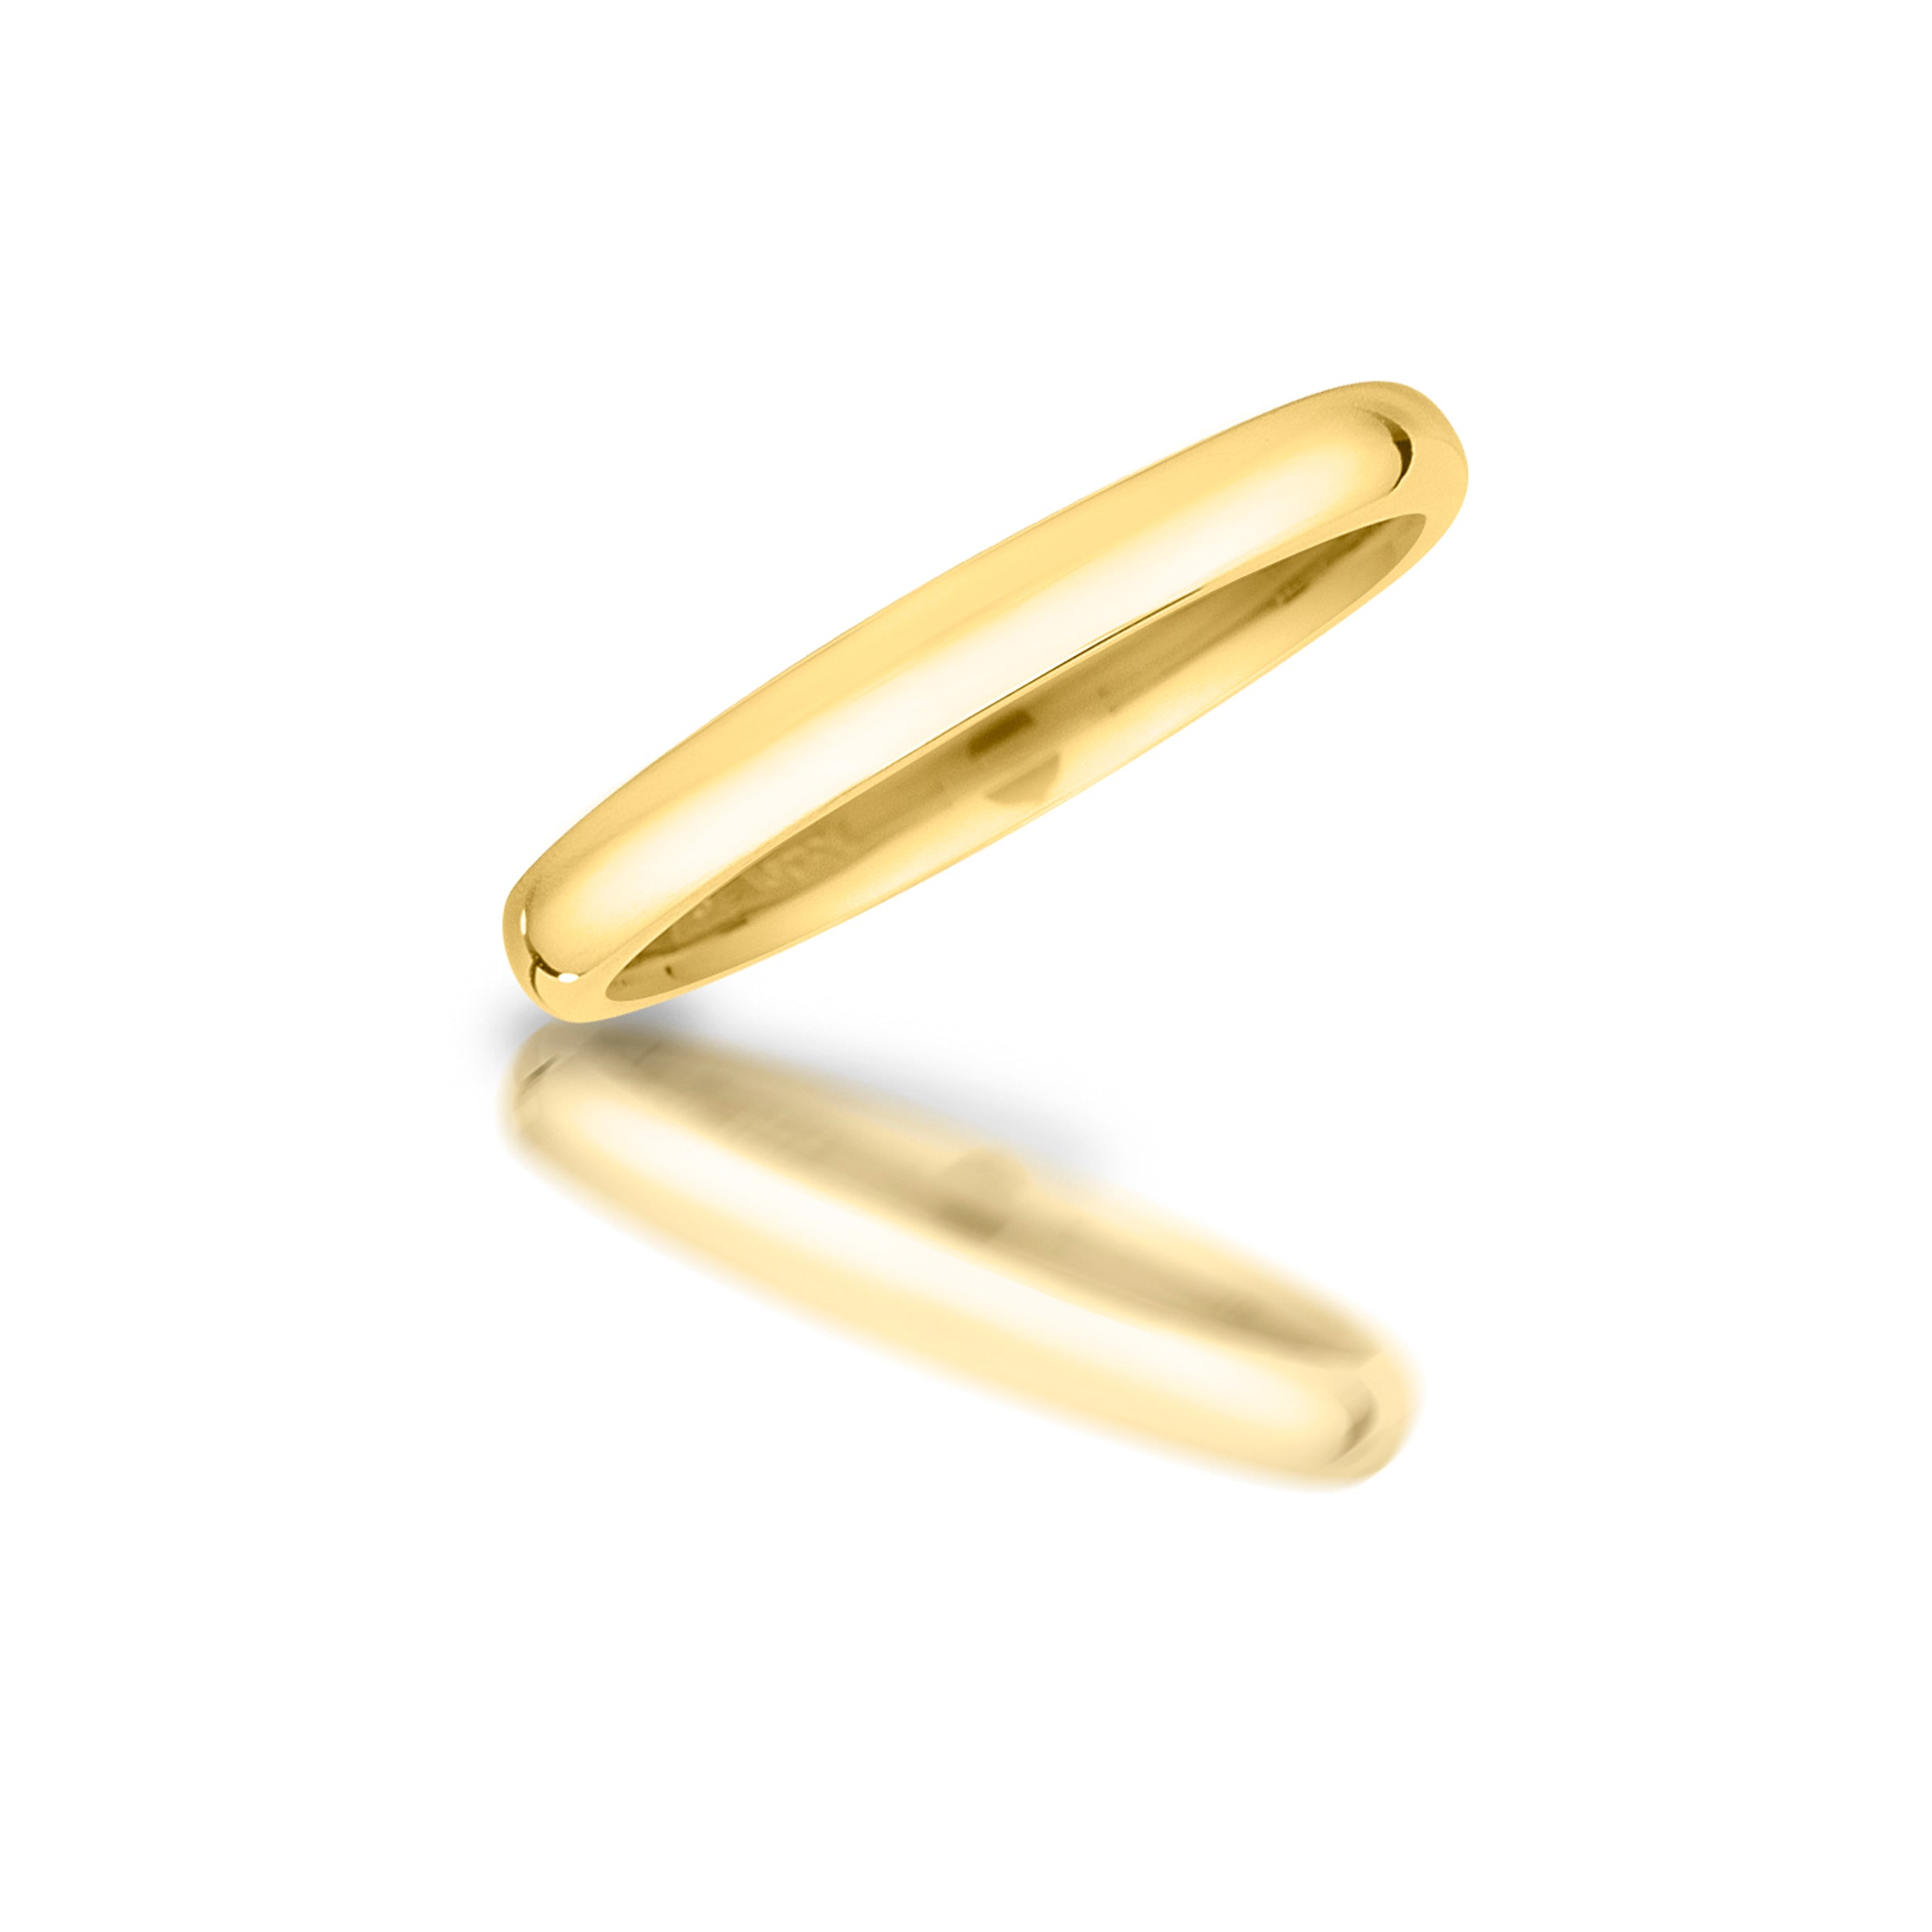 Half Domed 14 Karat Yellow Gold Band, Sizes 6 through 10